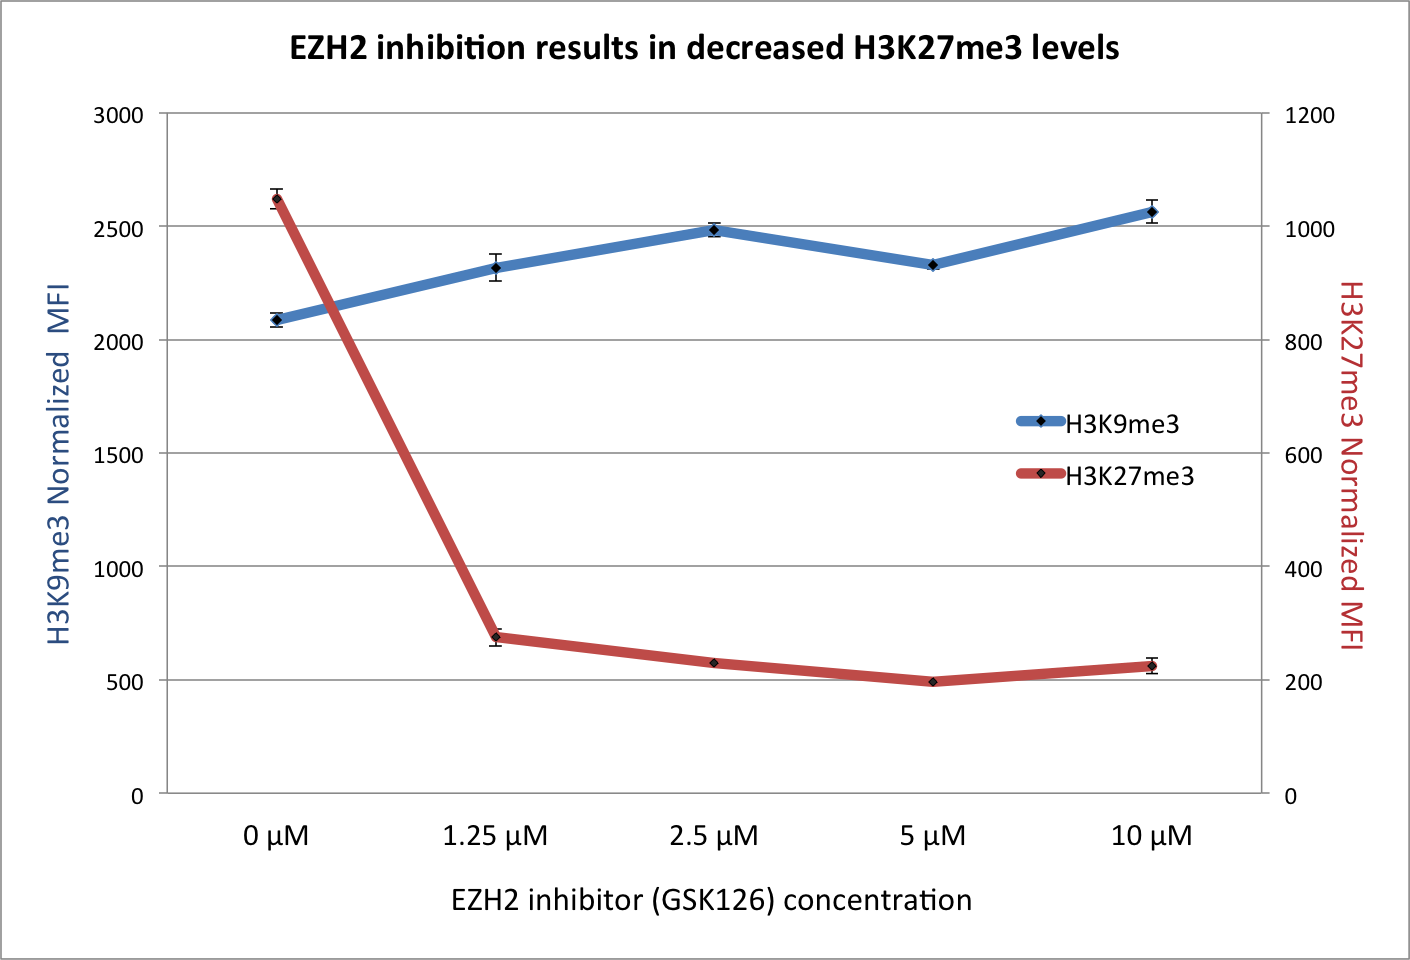 HDAC inhibitor (VPA) treatment increases histone acetylation with concomitant reductions in H3K27me2